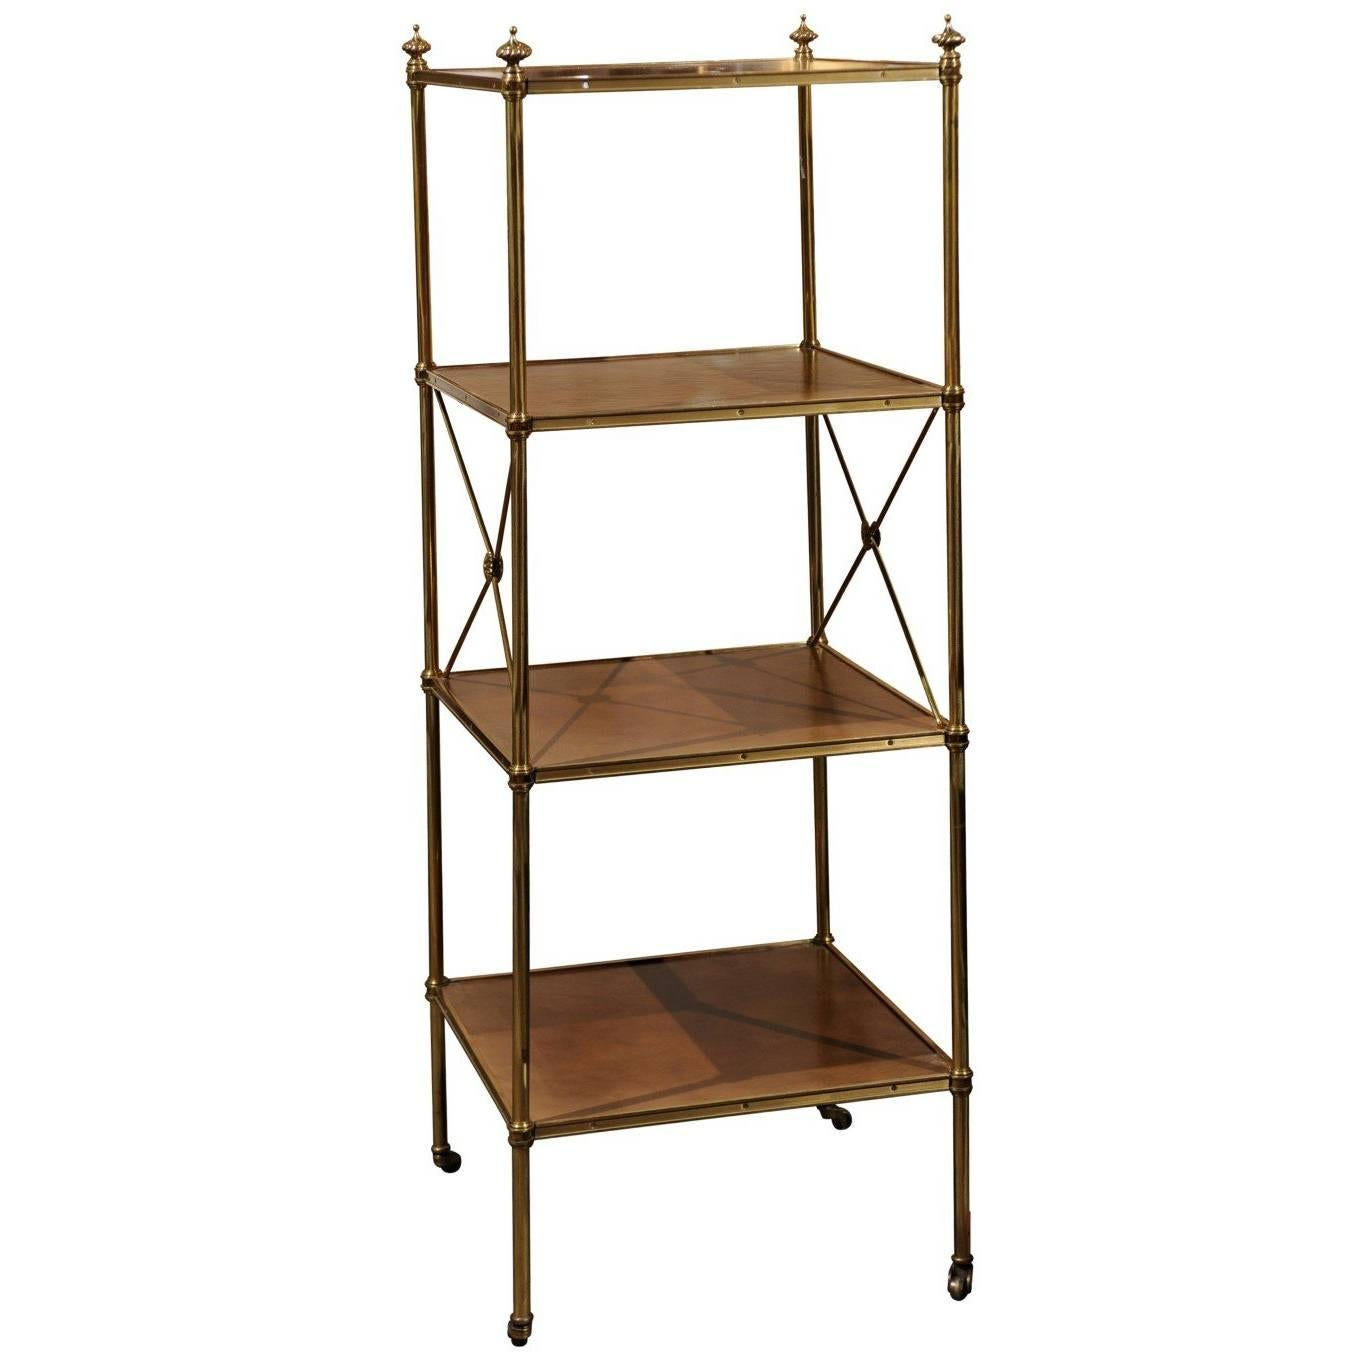 Maison Jansen Style Etagere Or Bookshelf In Steel And